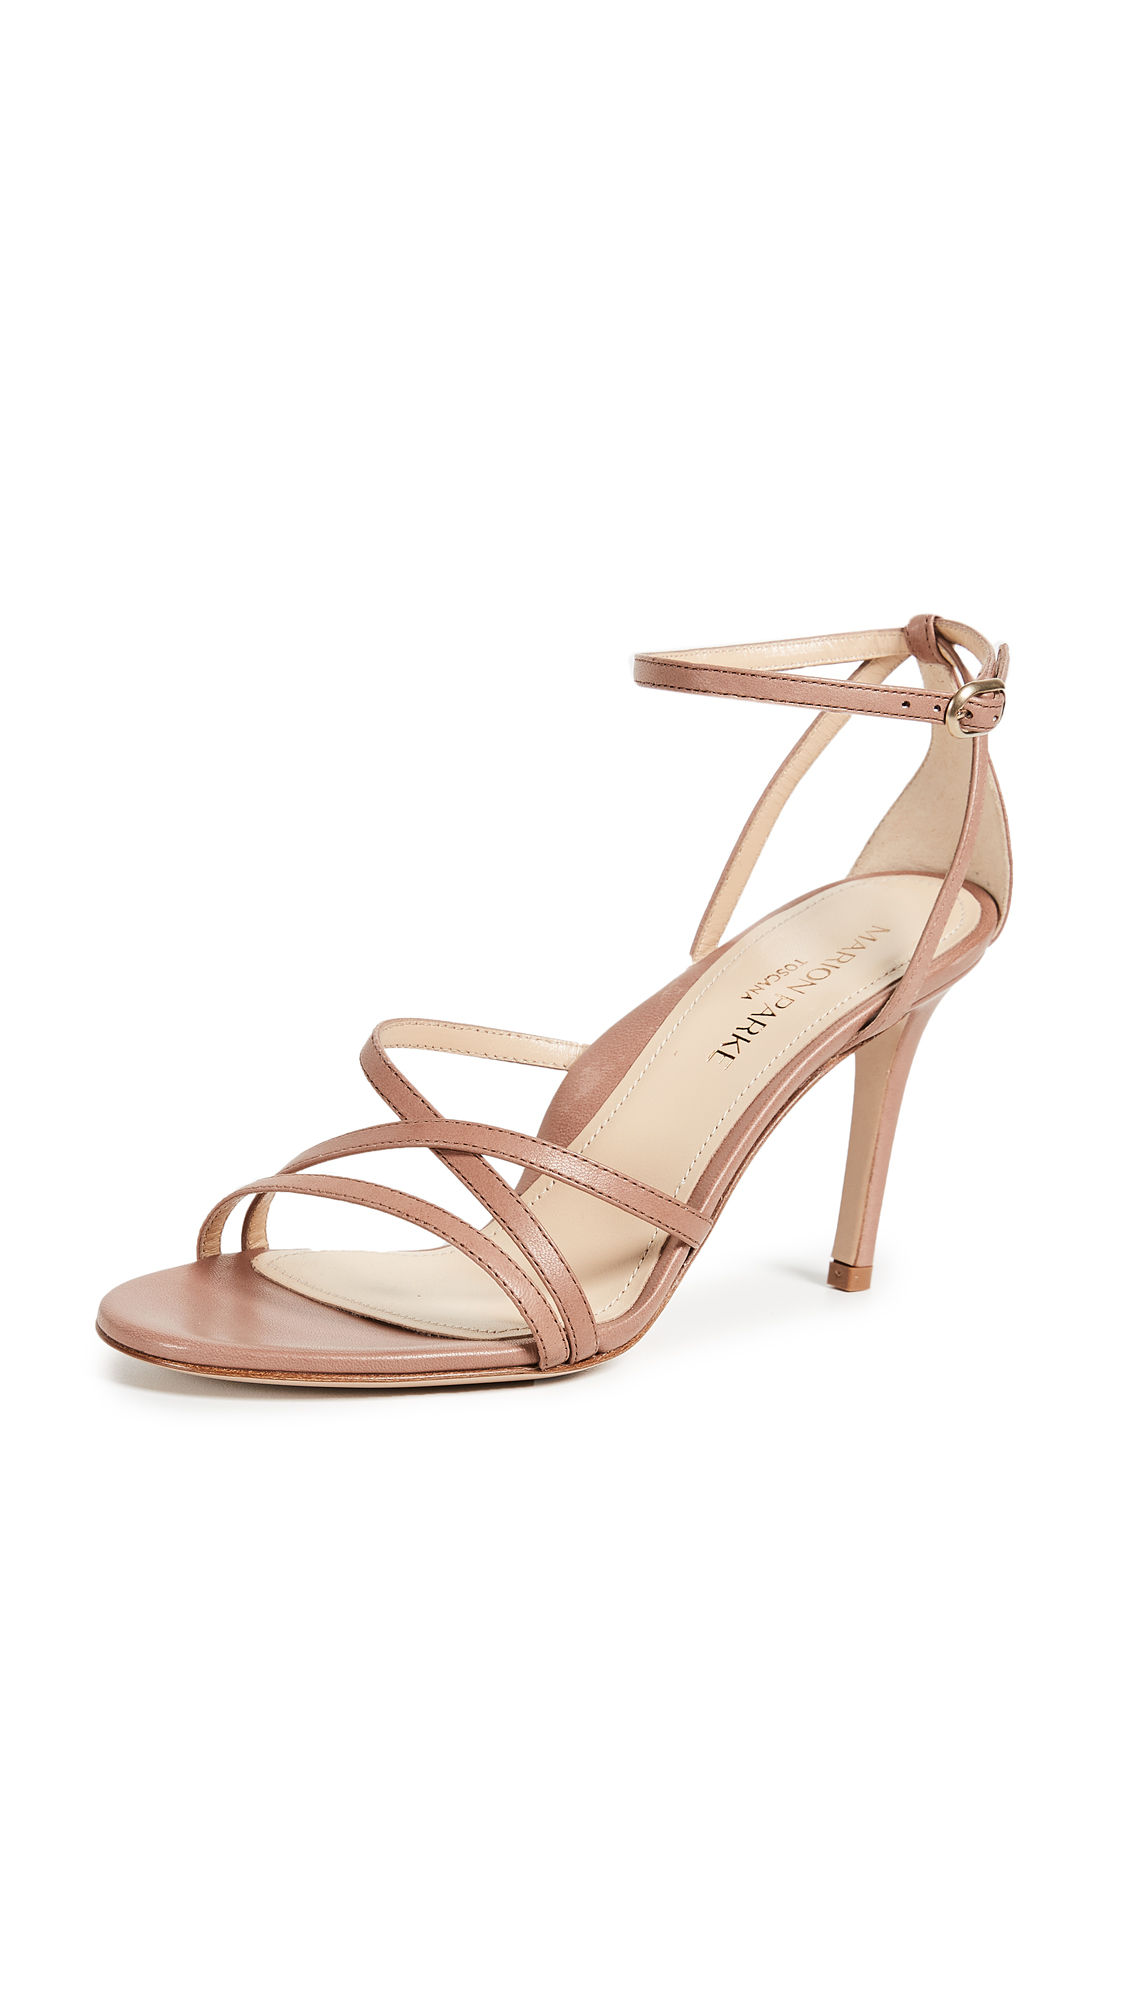 Marion Parke Lillian Sandals - Blush